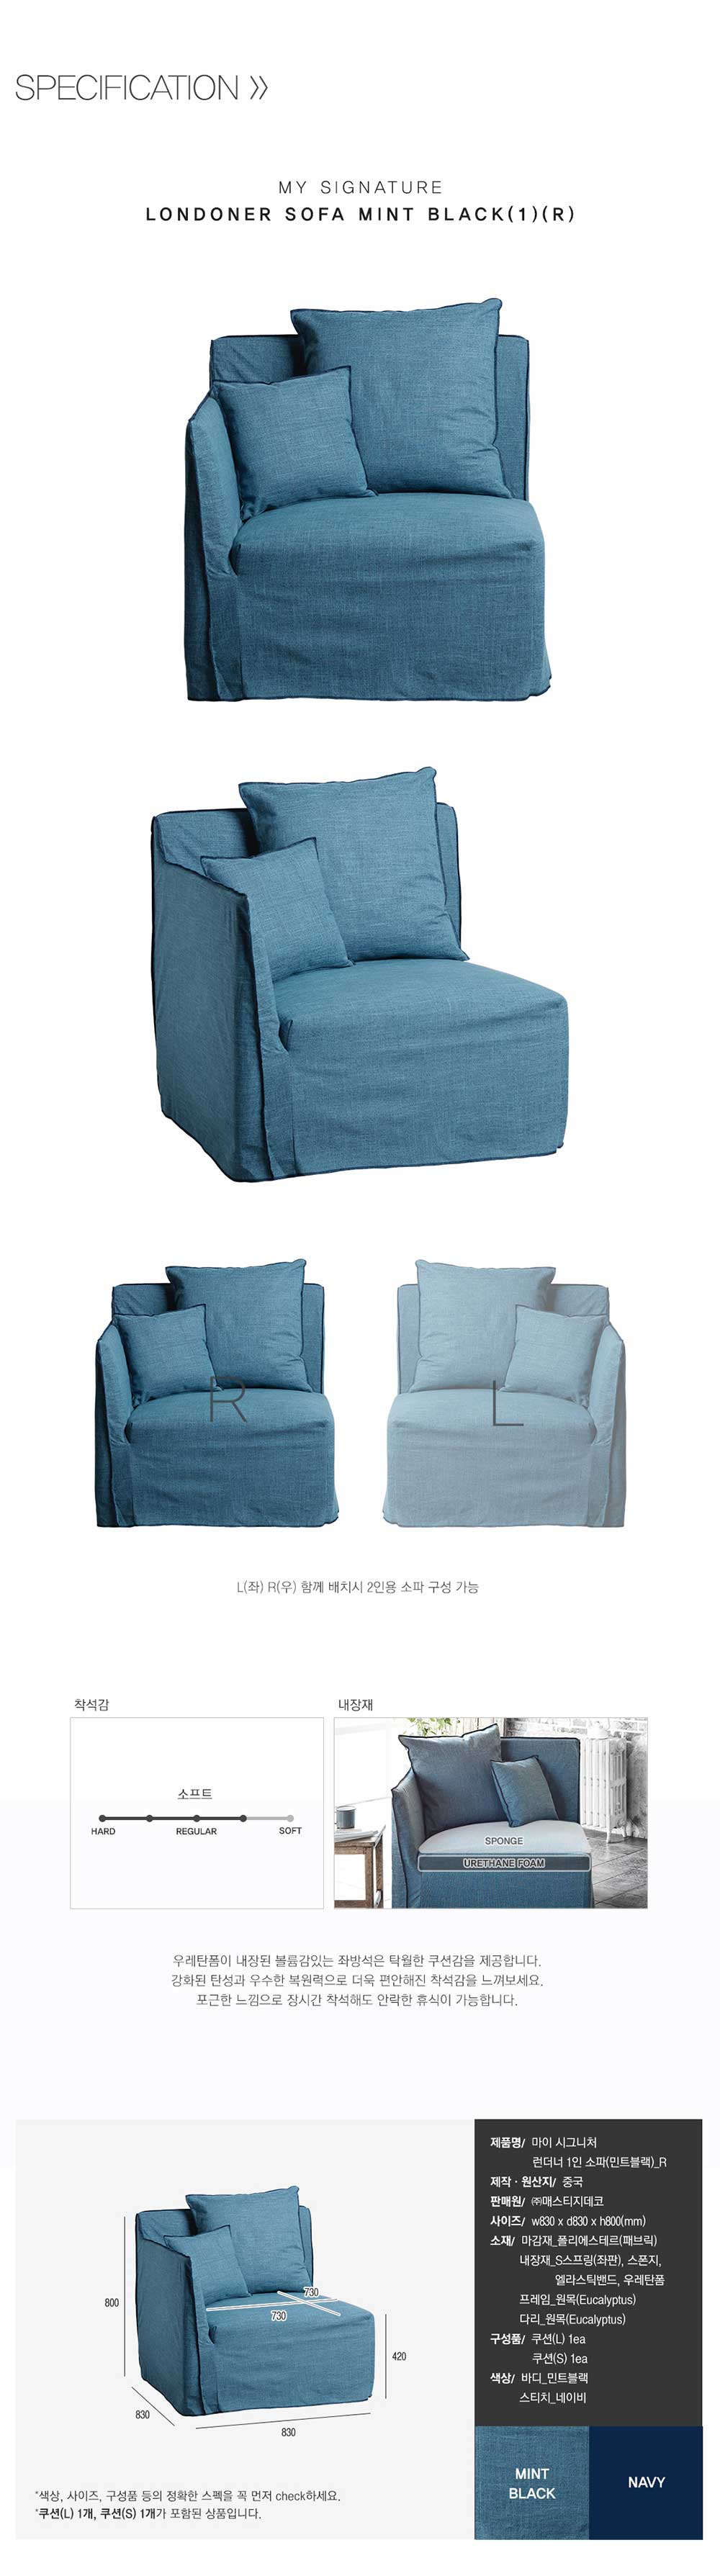 Londoner_Kinfolk_Industrial_Armchair_Sofa_(RIGHT)_(Mint)_Online_Furniture_Singapore_Specification_by_born_in_colour